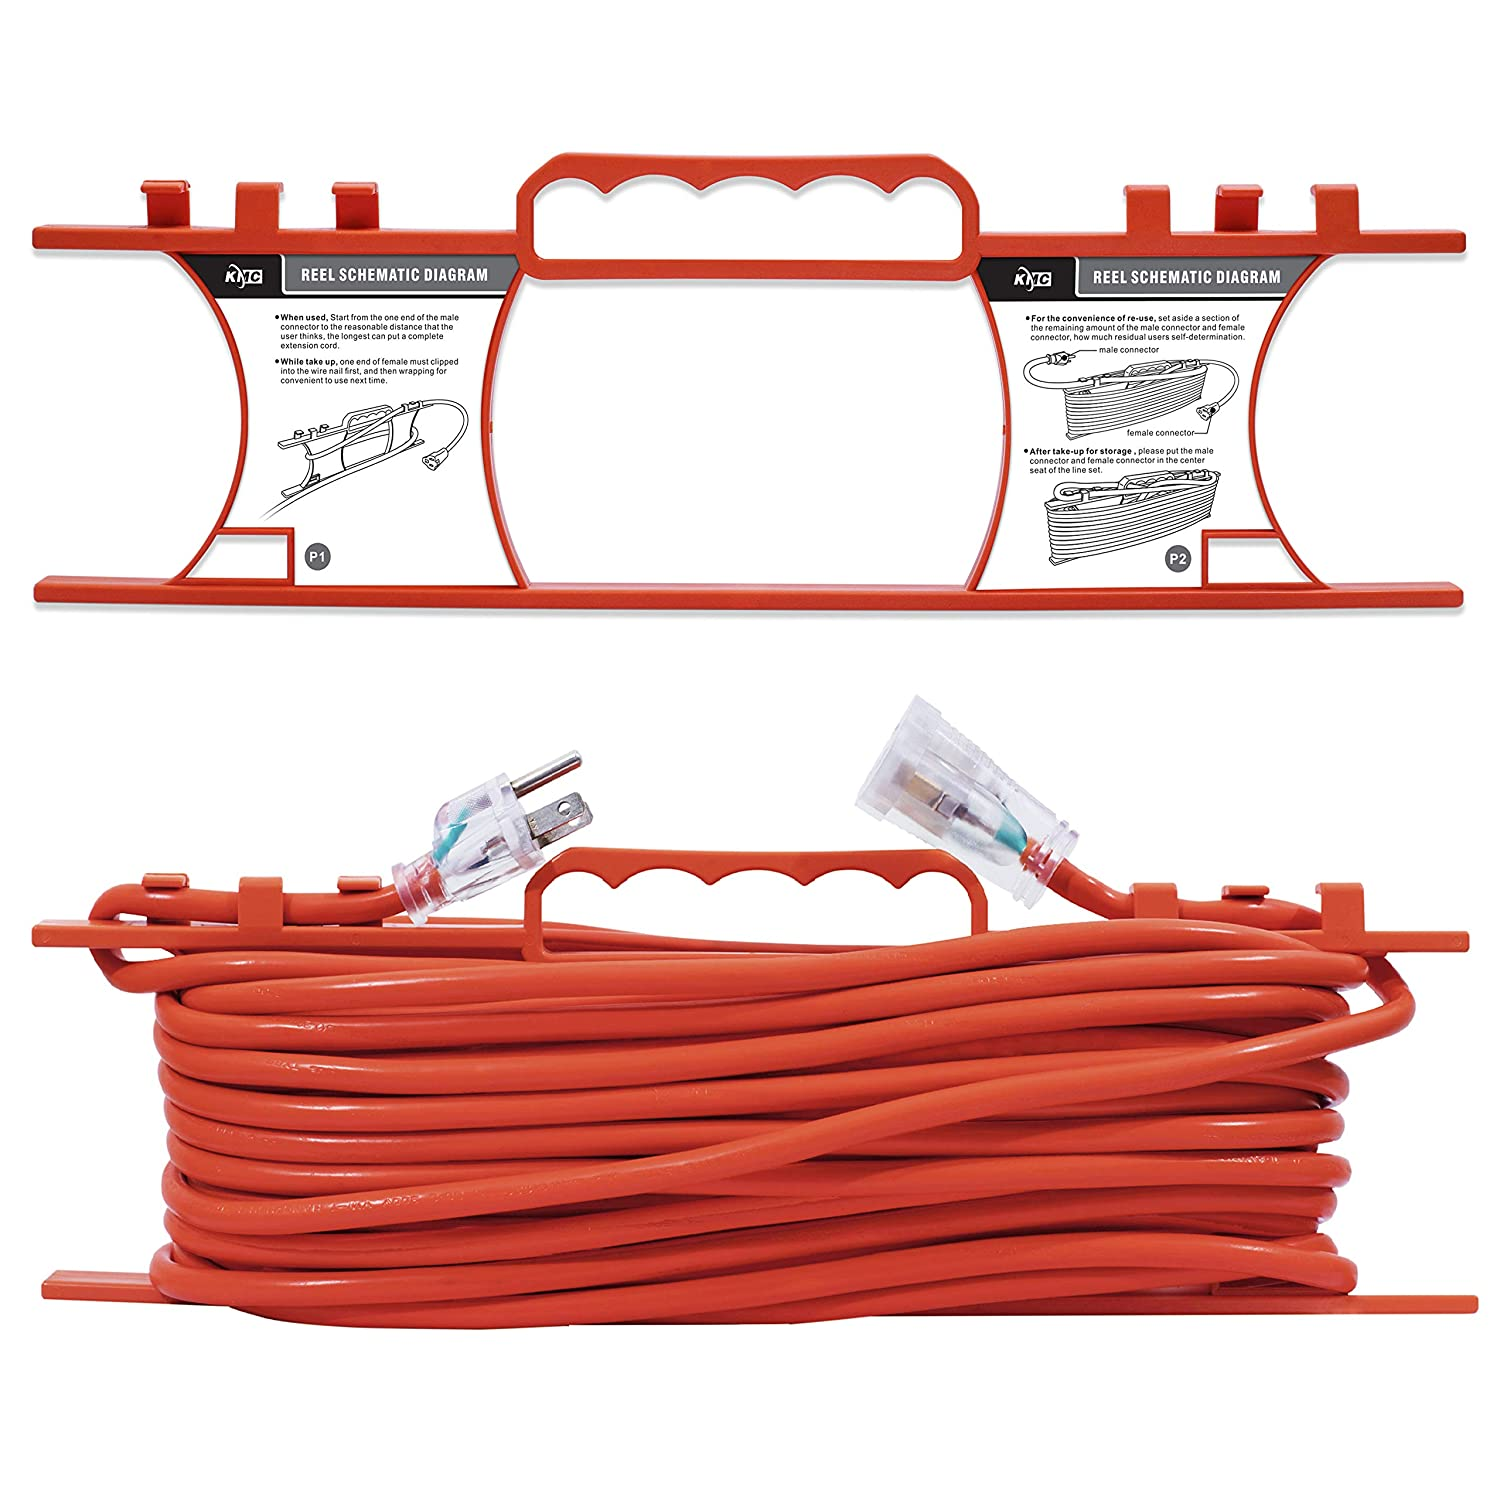 amazon com kmc 16 awg power outdoor extension cord with windingamazon com kmc 16 awg power outdoor extension cord with winding cord shelf 16 3,100 feet heavy duty 3 prong bright orange extension cord home